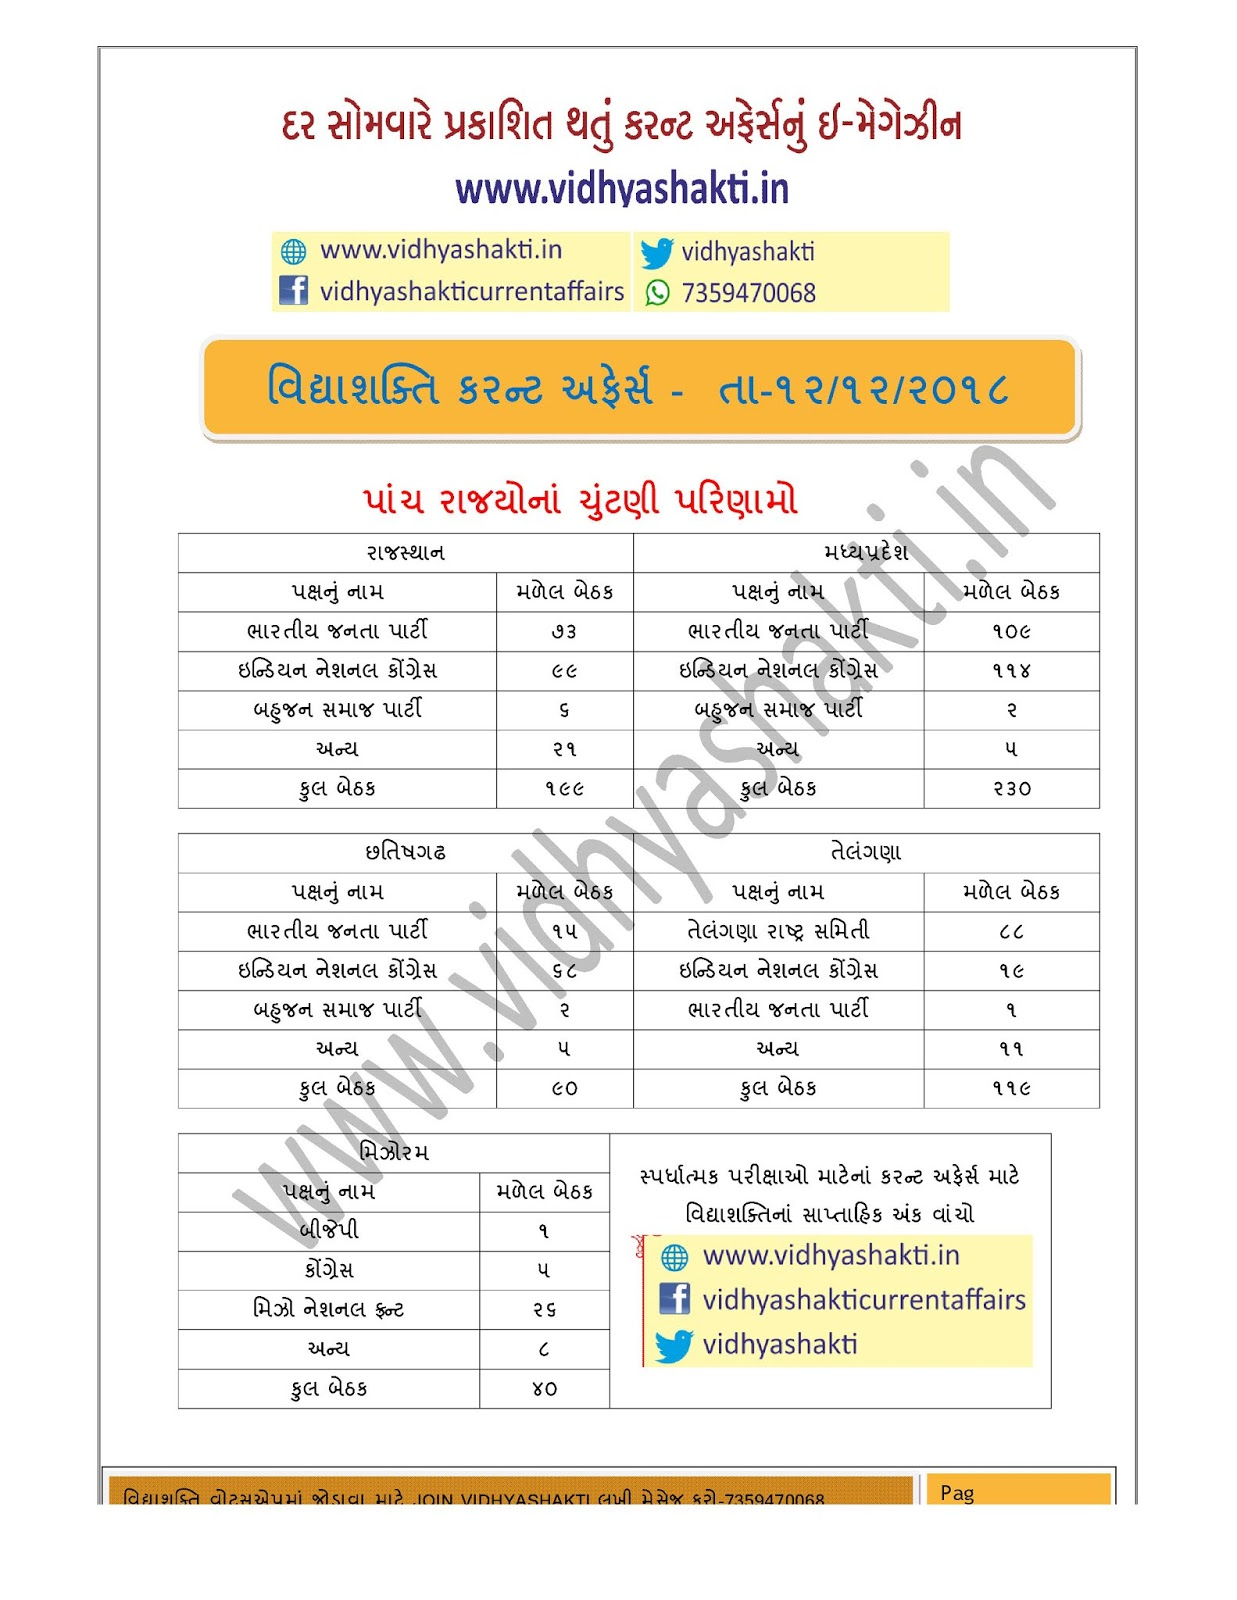 Election Result of Five State for Gujarati current affairs